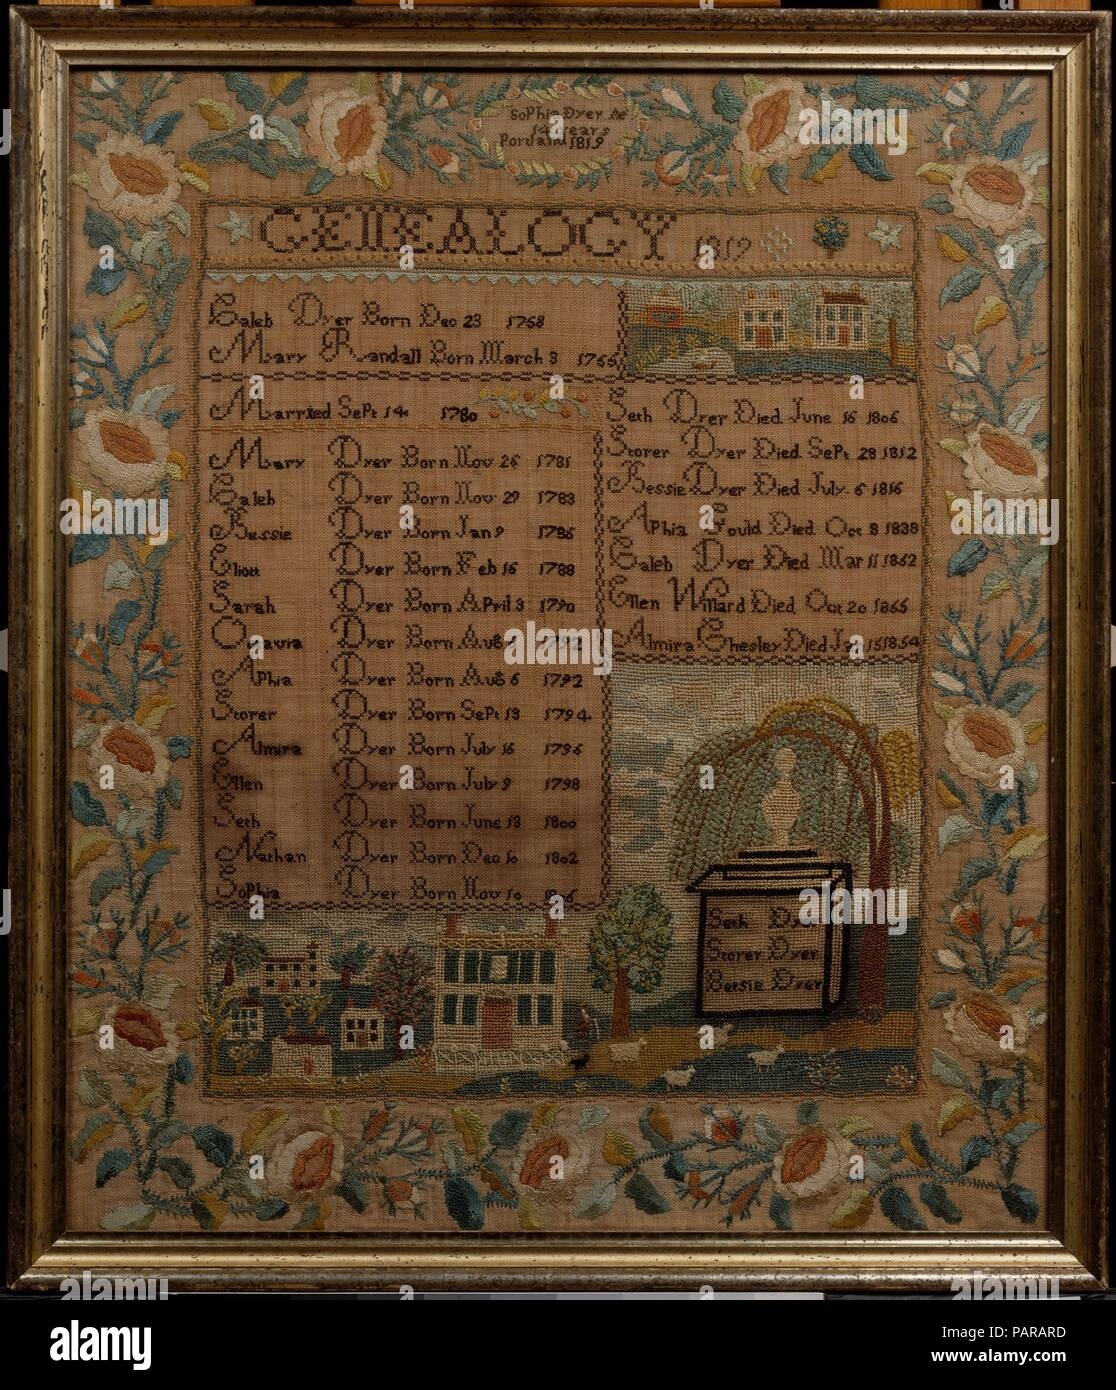 Embroidered Sampler. Culture: American. Dimensions: 25 x 21 1/2 in. (63.5 x 54.6 cm). Maker: Sophia Dyer (born 1805). Date: 1819.  Portland, Maine schoolgirls produced a distinctive group of genealogical samplers. Following a prescribed format, these samplers list the birth and marriage dates of the parents; and the name and birth date of each of their children. Also characteristic are townscapes with white clapboard Federal houses and elegant borders of roses, rosebuds and leafy vines. Museum: Metropolitan Museum of Art, New York, USA. Stock Photo